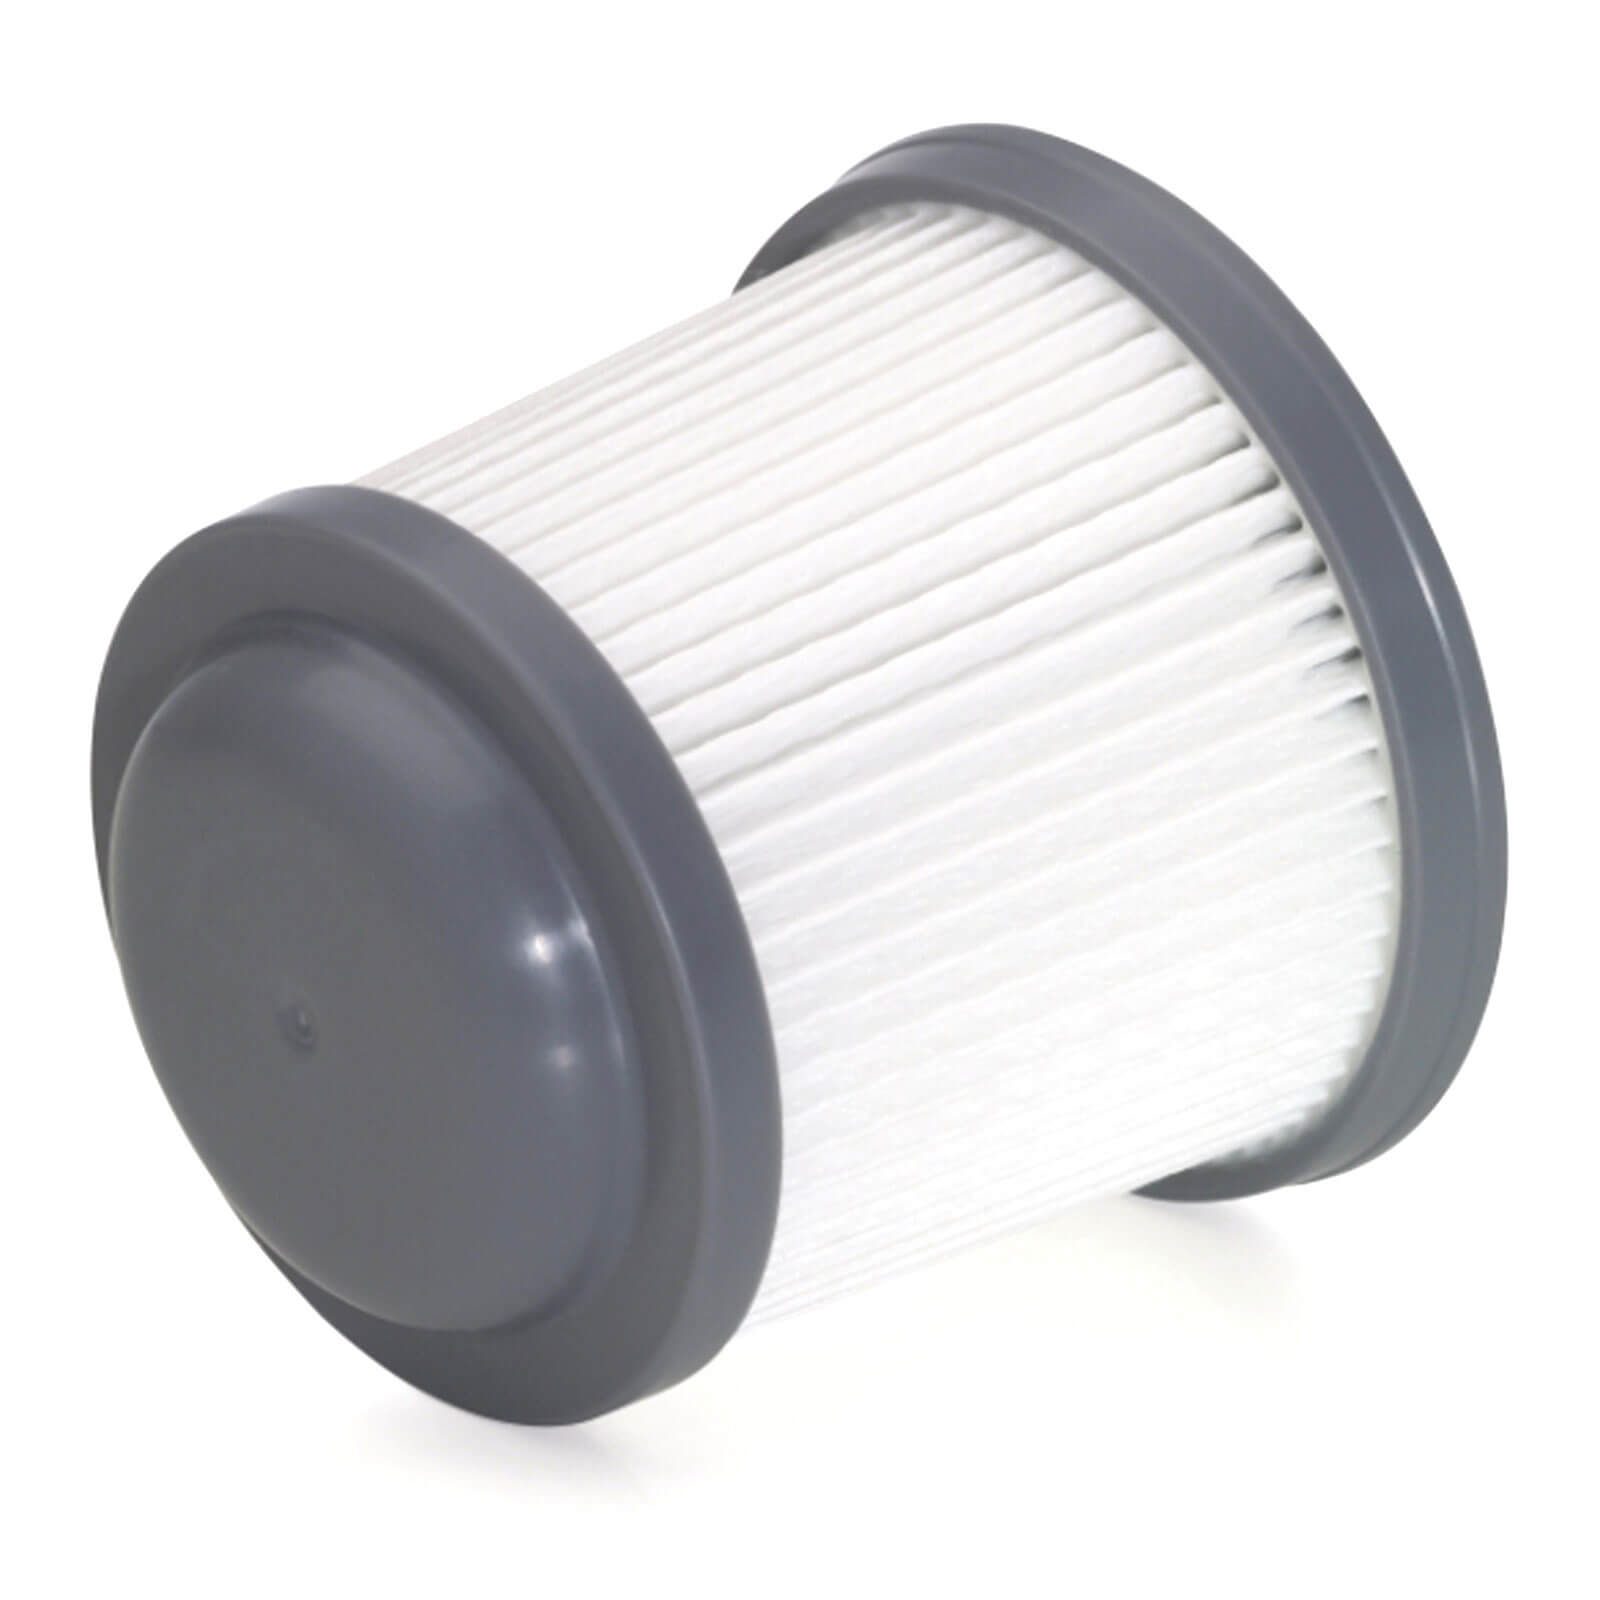 Image of Black & Decker VF90 Genuine Dust Filter for Pivot & New Flexi Dustbusters Pack of 1